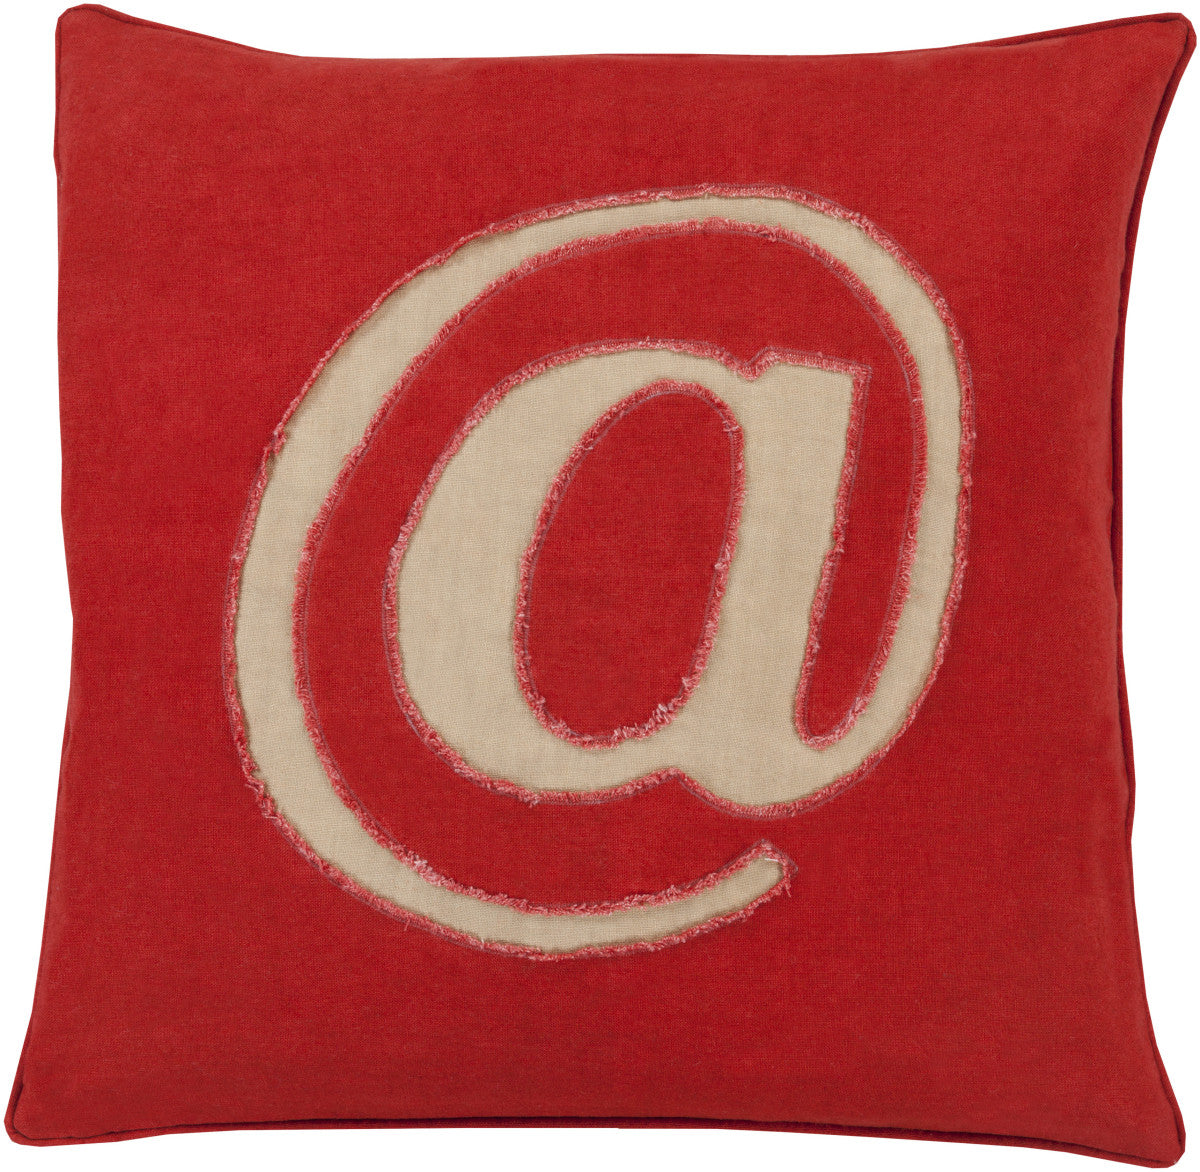 Surya Linen Text Where it's at LX-002 Pillow